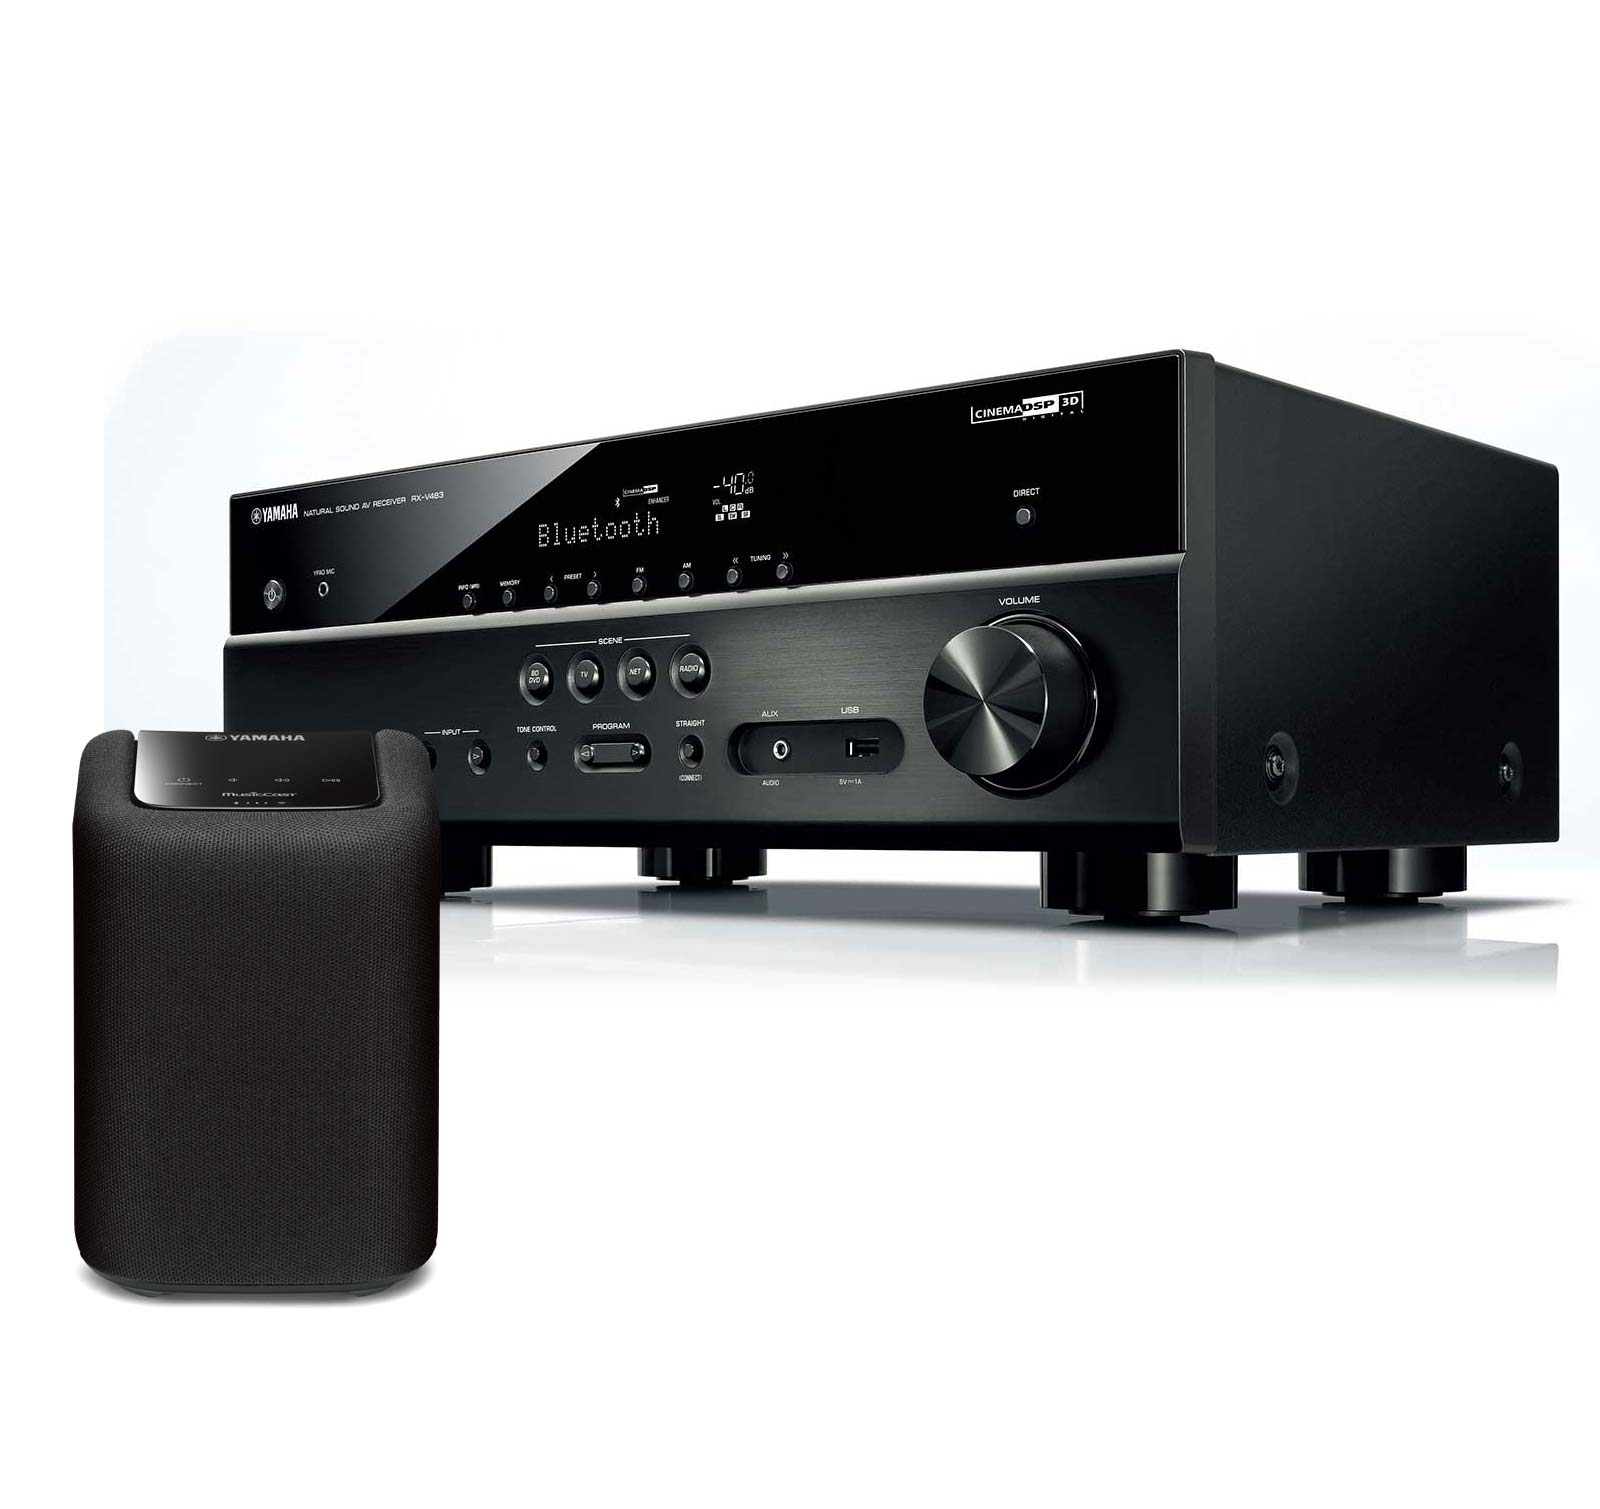 yamaha rx v483 av receiver and wx010 black wireless speaker musiccast kit ebay. Black Bedroom Furniture Sets. Home Design Ideas